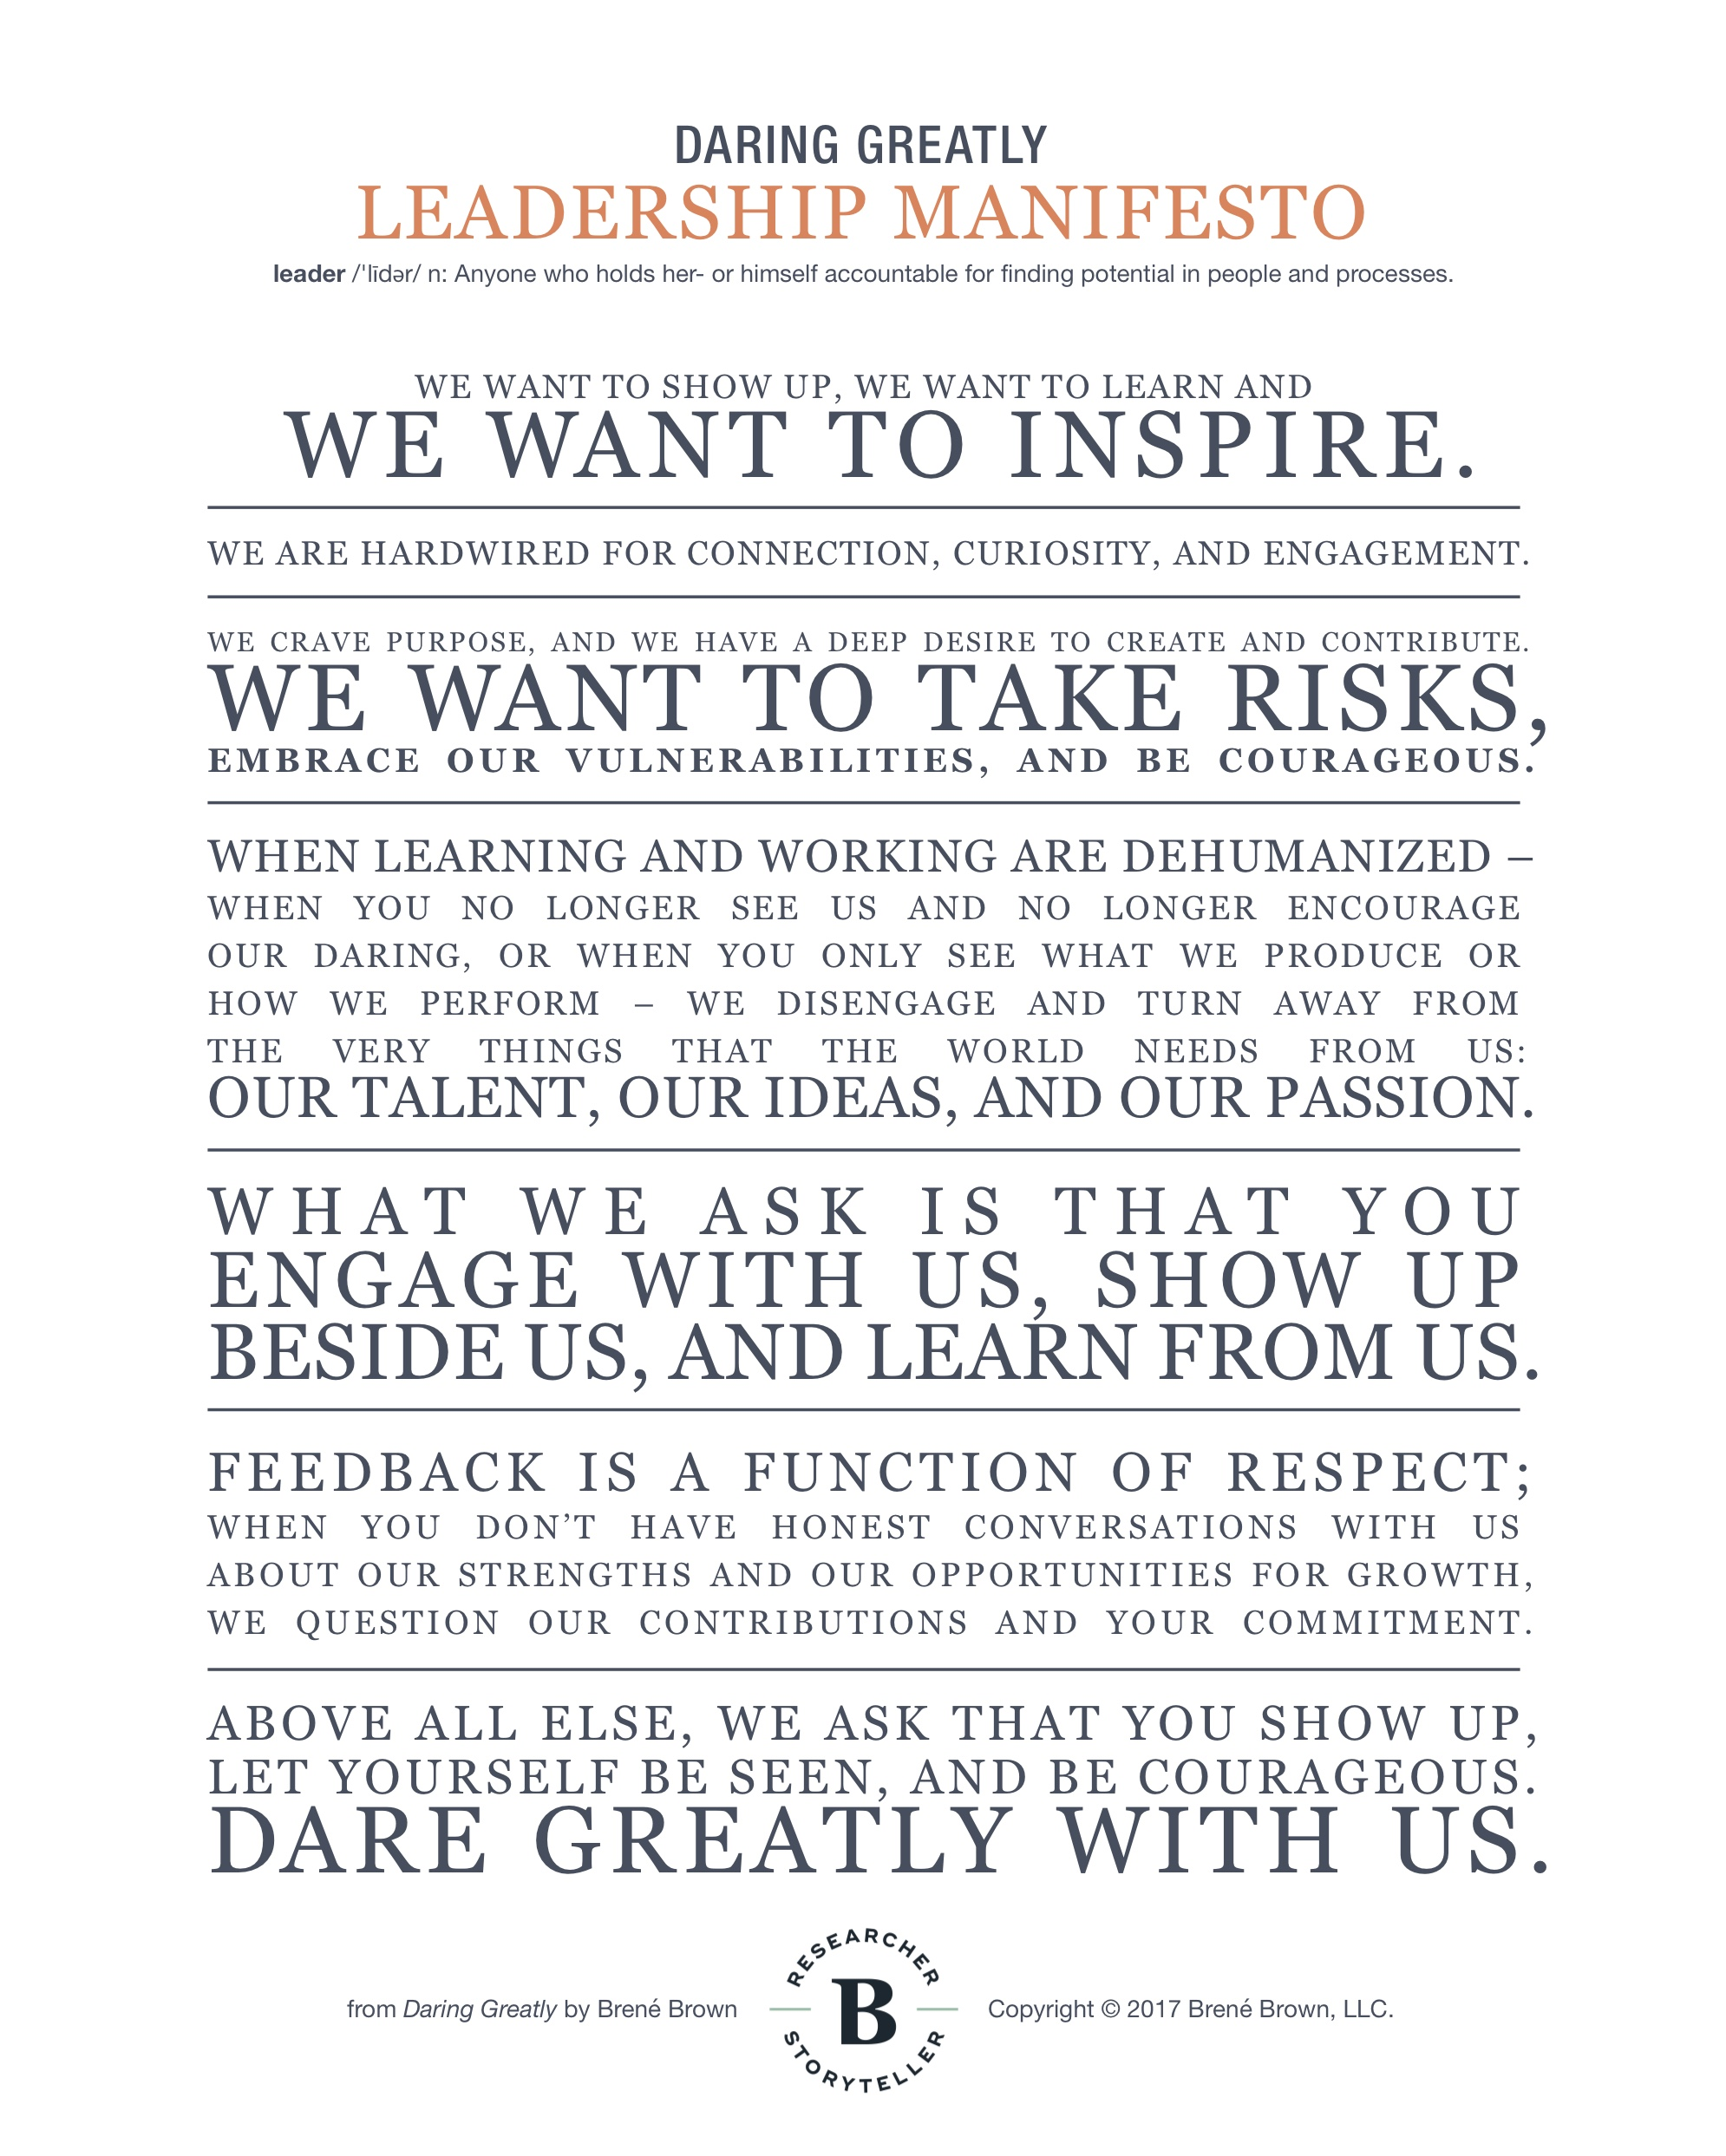 Brene Brown Manifesto